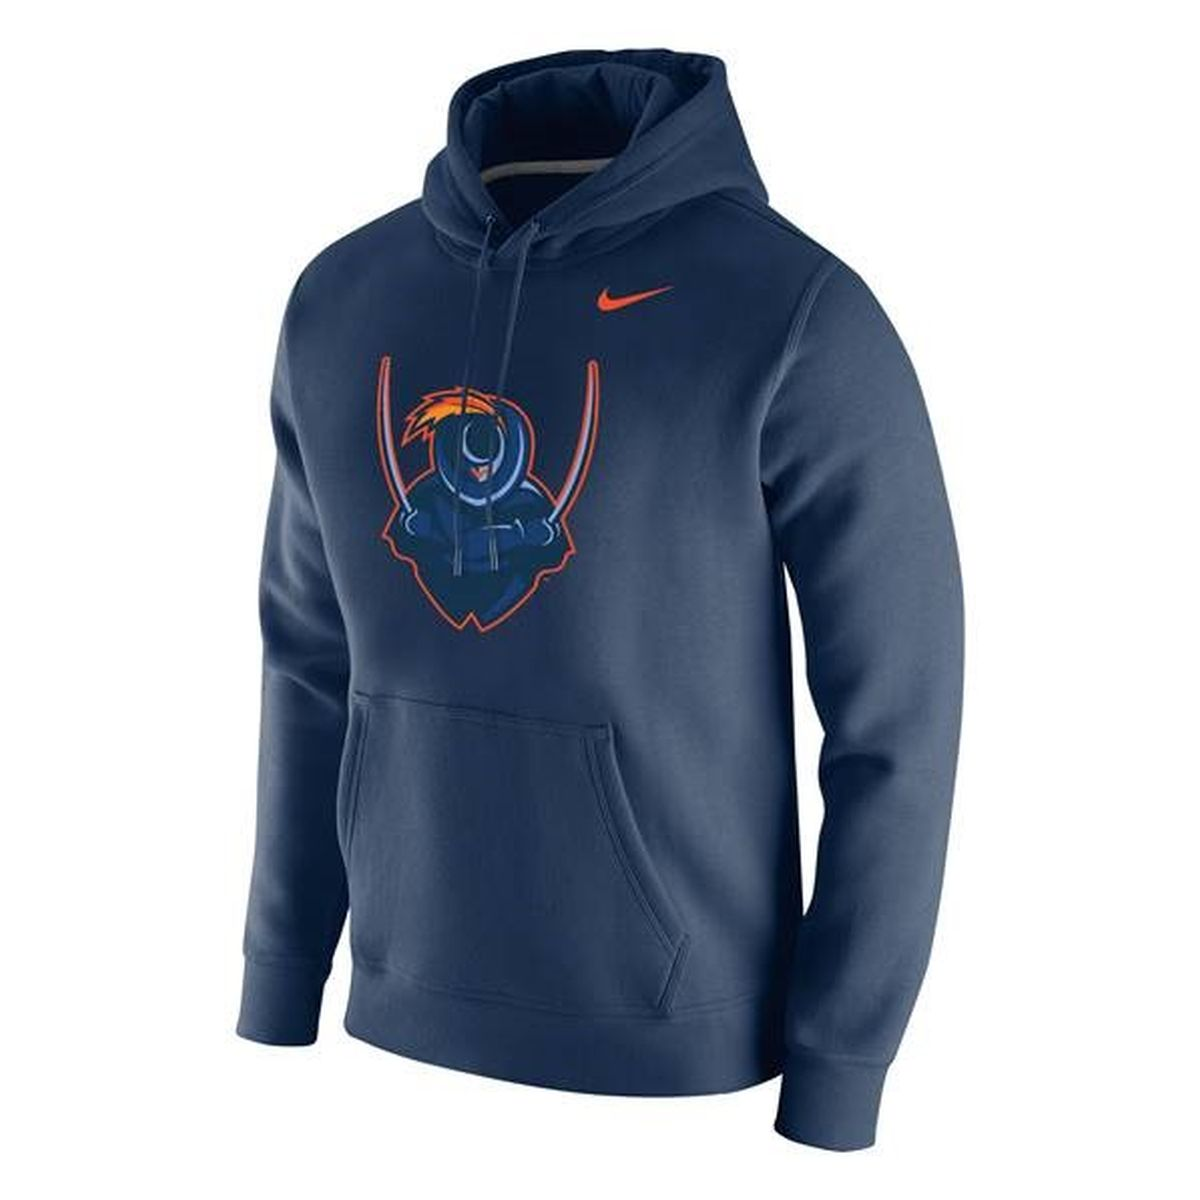 University of Virginia 2020 Cavalier Navy Fleece Hoodie